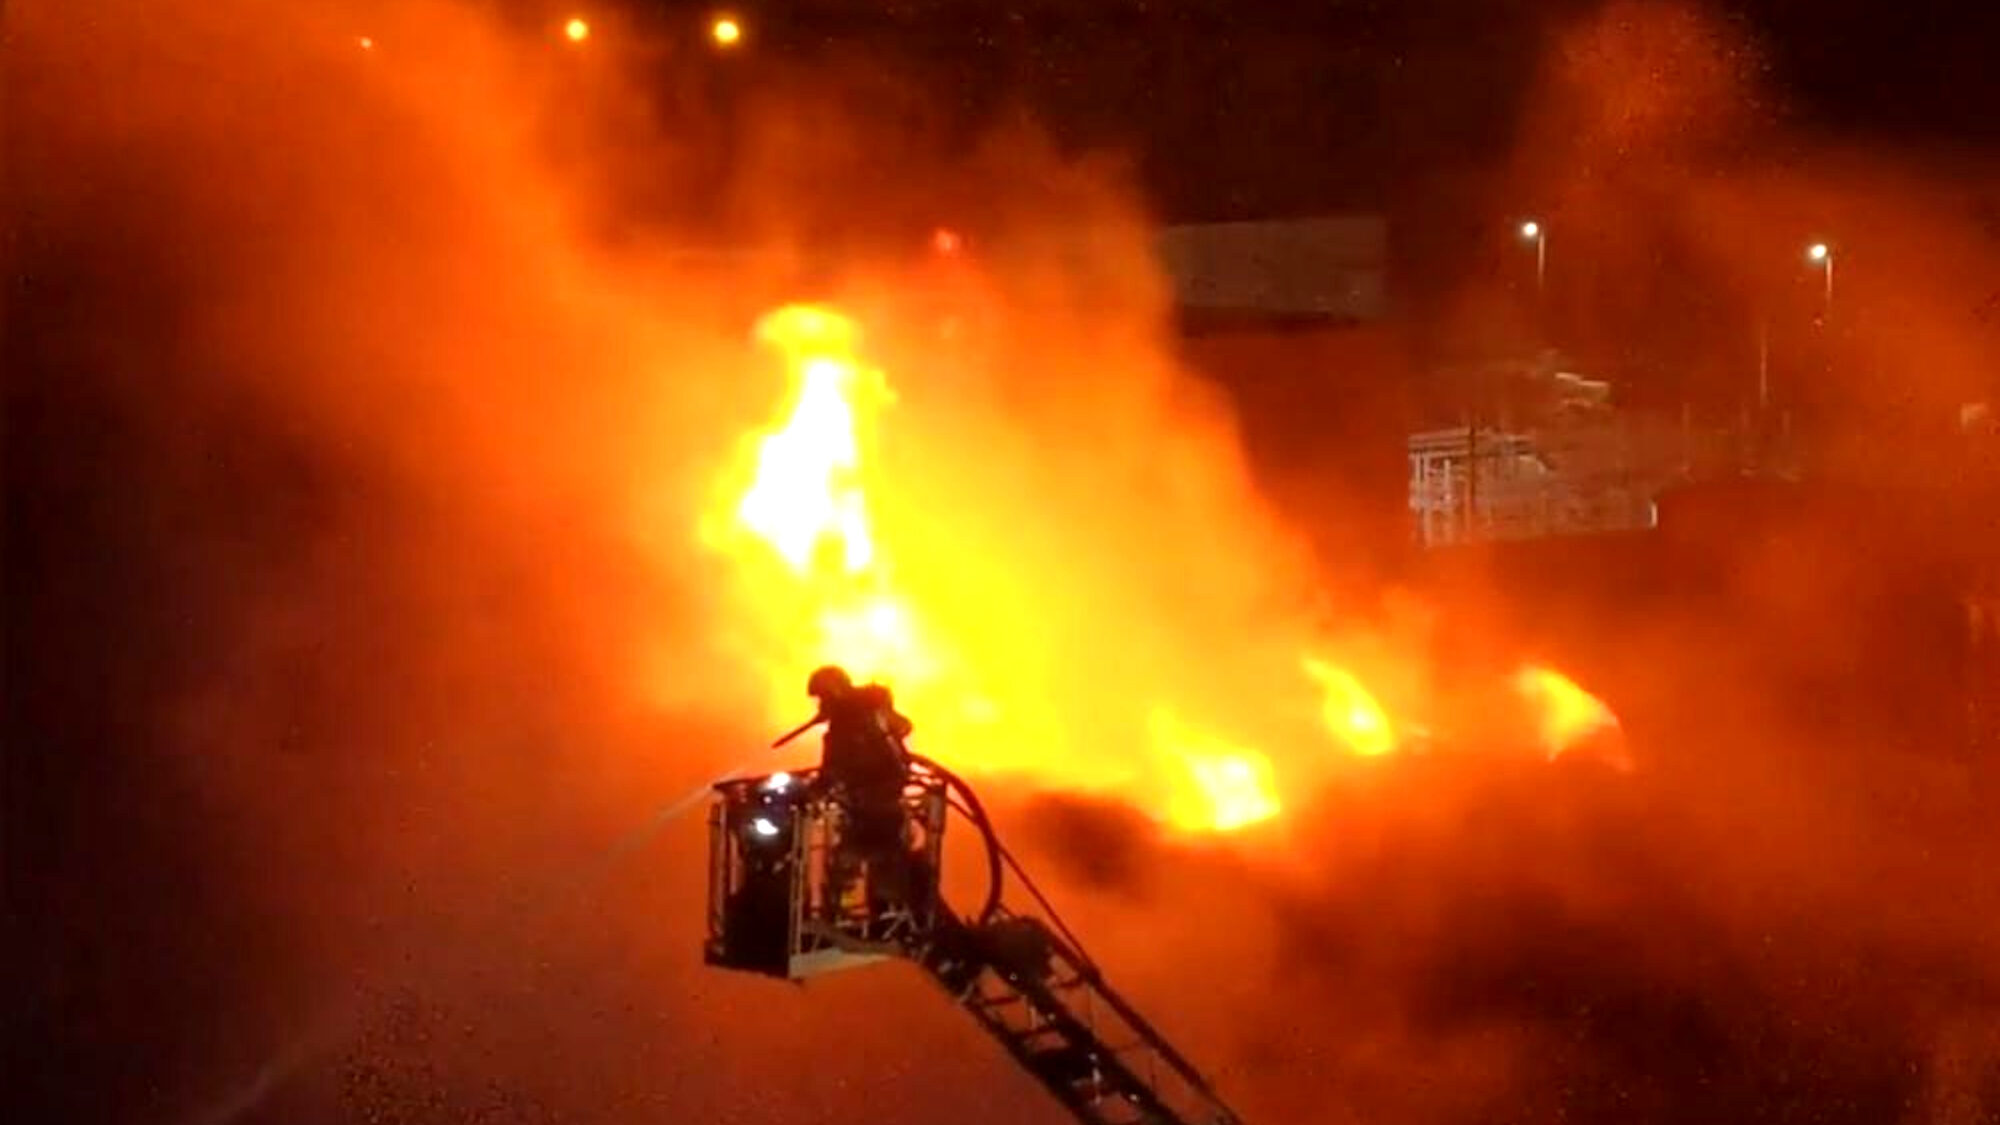 Irish Industrial Complex Goes Up in Flames